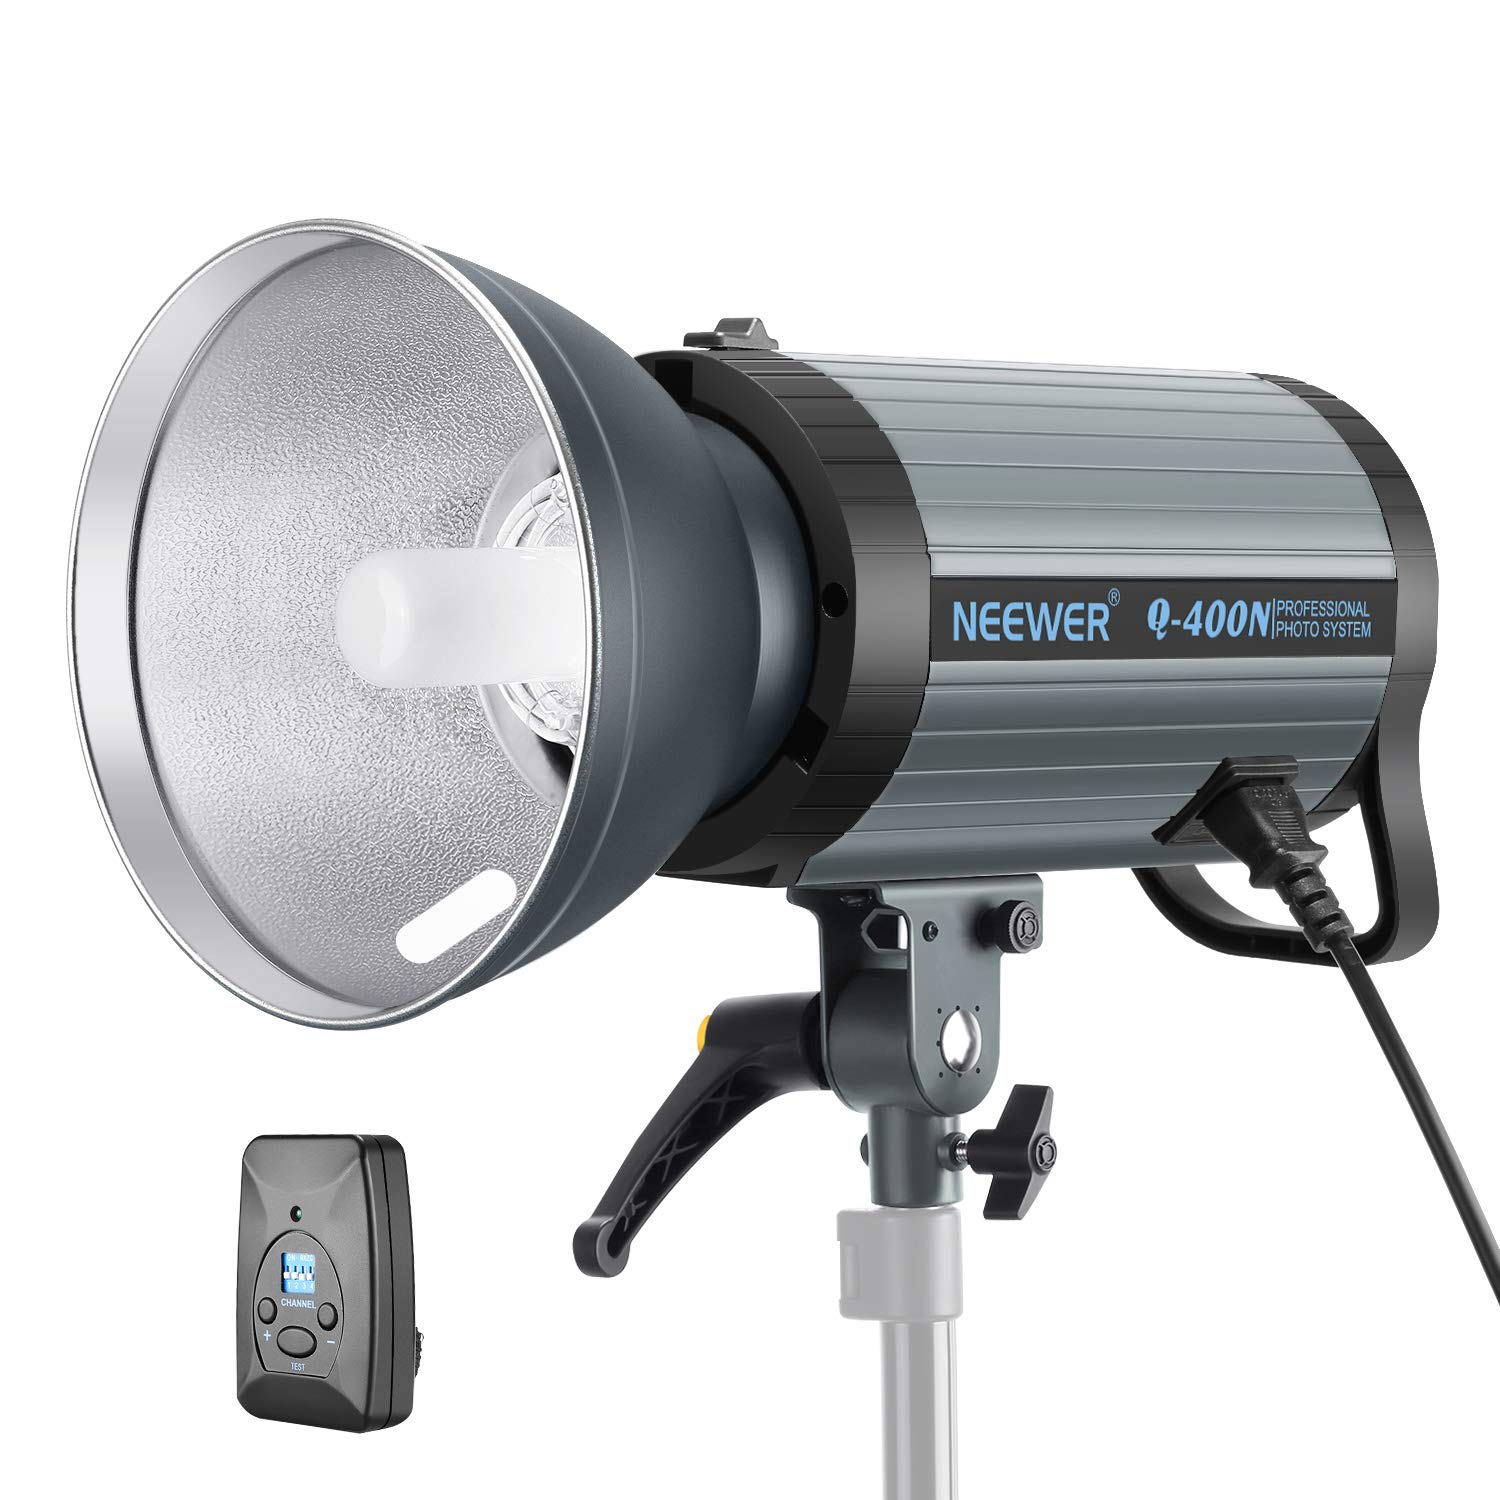 Neewer 400W GN65 Studio Flash Strobe Light Monolight with 2.4G Wireless Trigger and Modeling Lamp, Recycle in 0.01-0.5 Sec, Bowens Mount for Indoor Studio Portrait Photography(Q400N) by Neewer (Image #1)